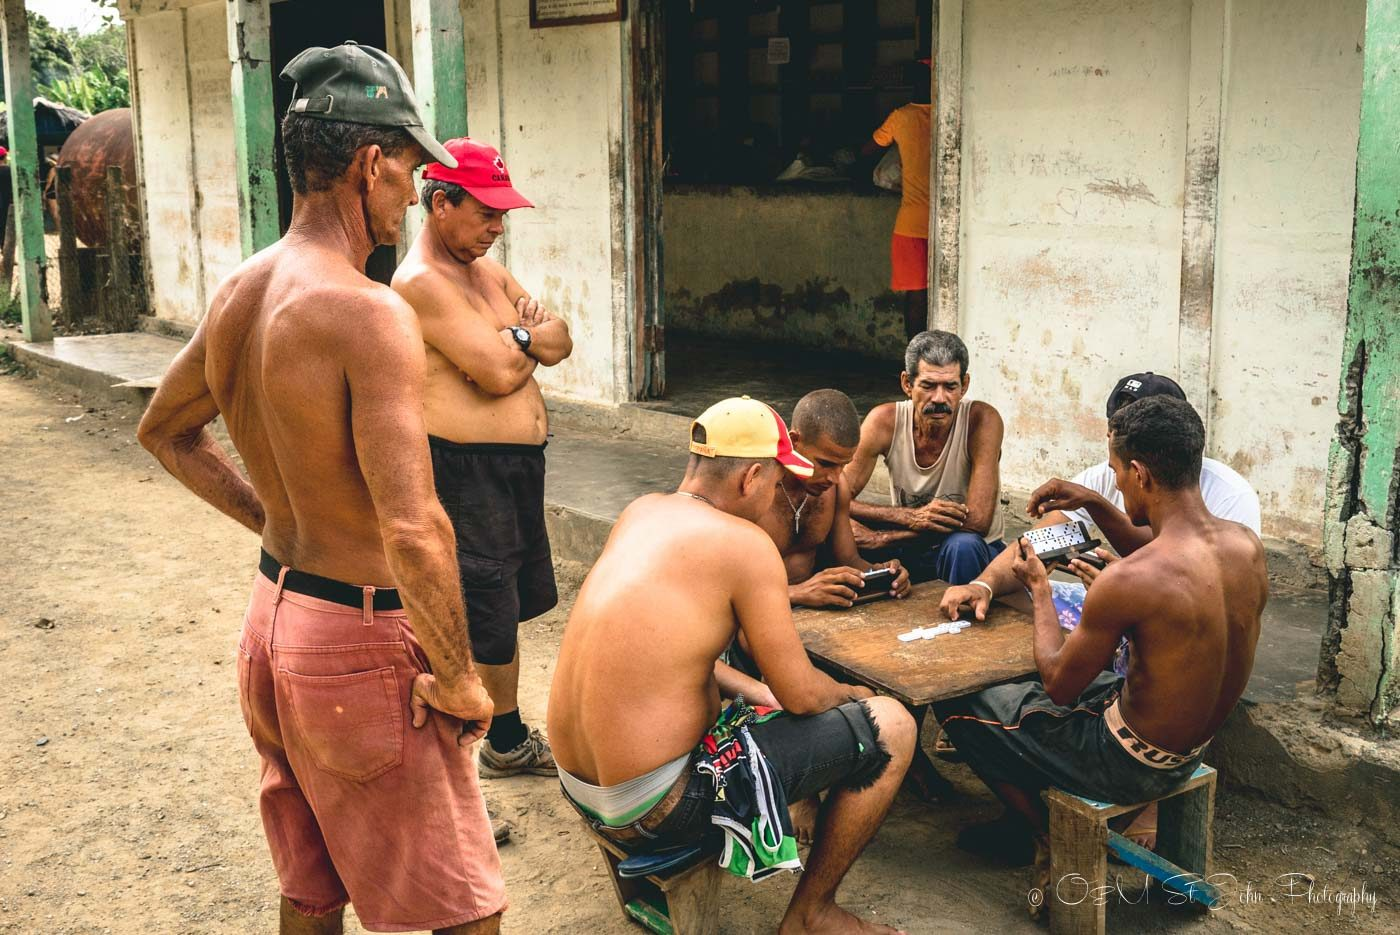 People are the star of the show in Baracoa, Cuba